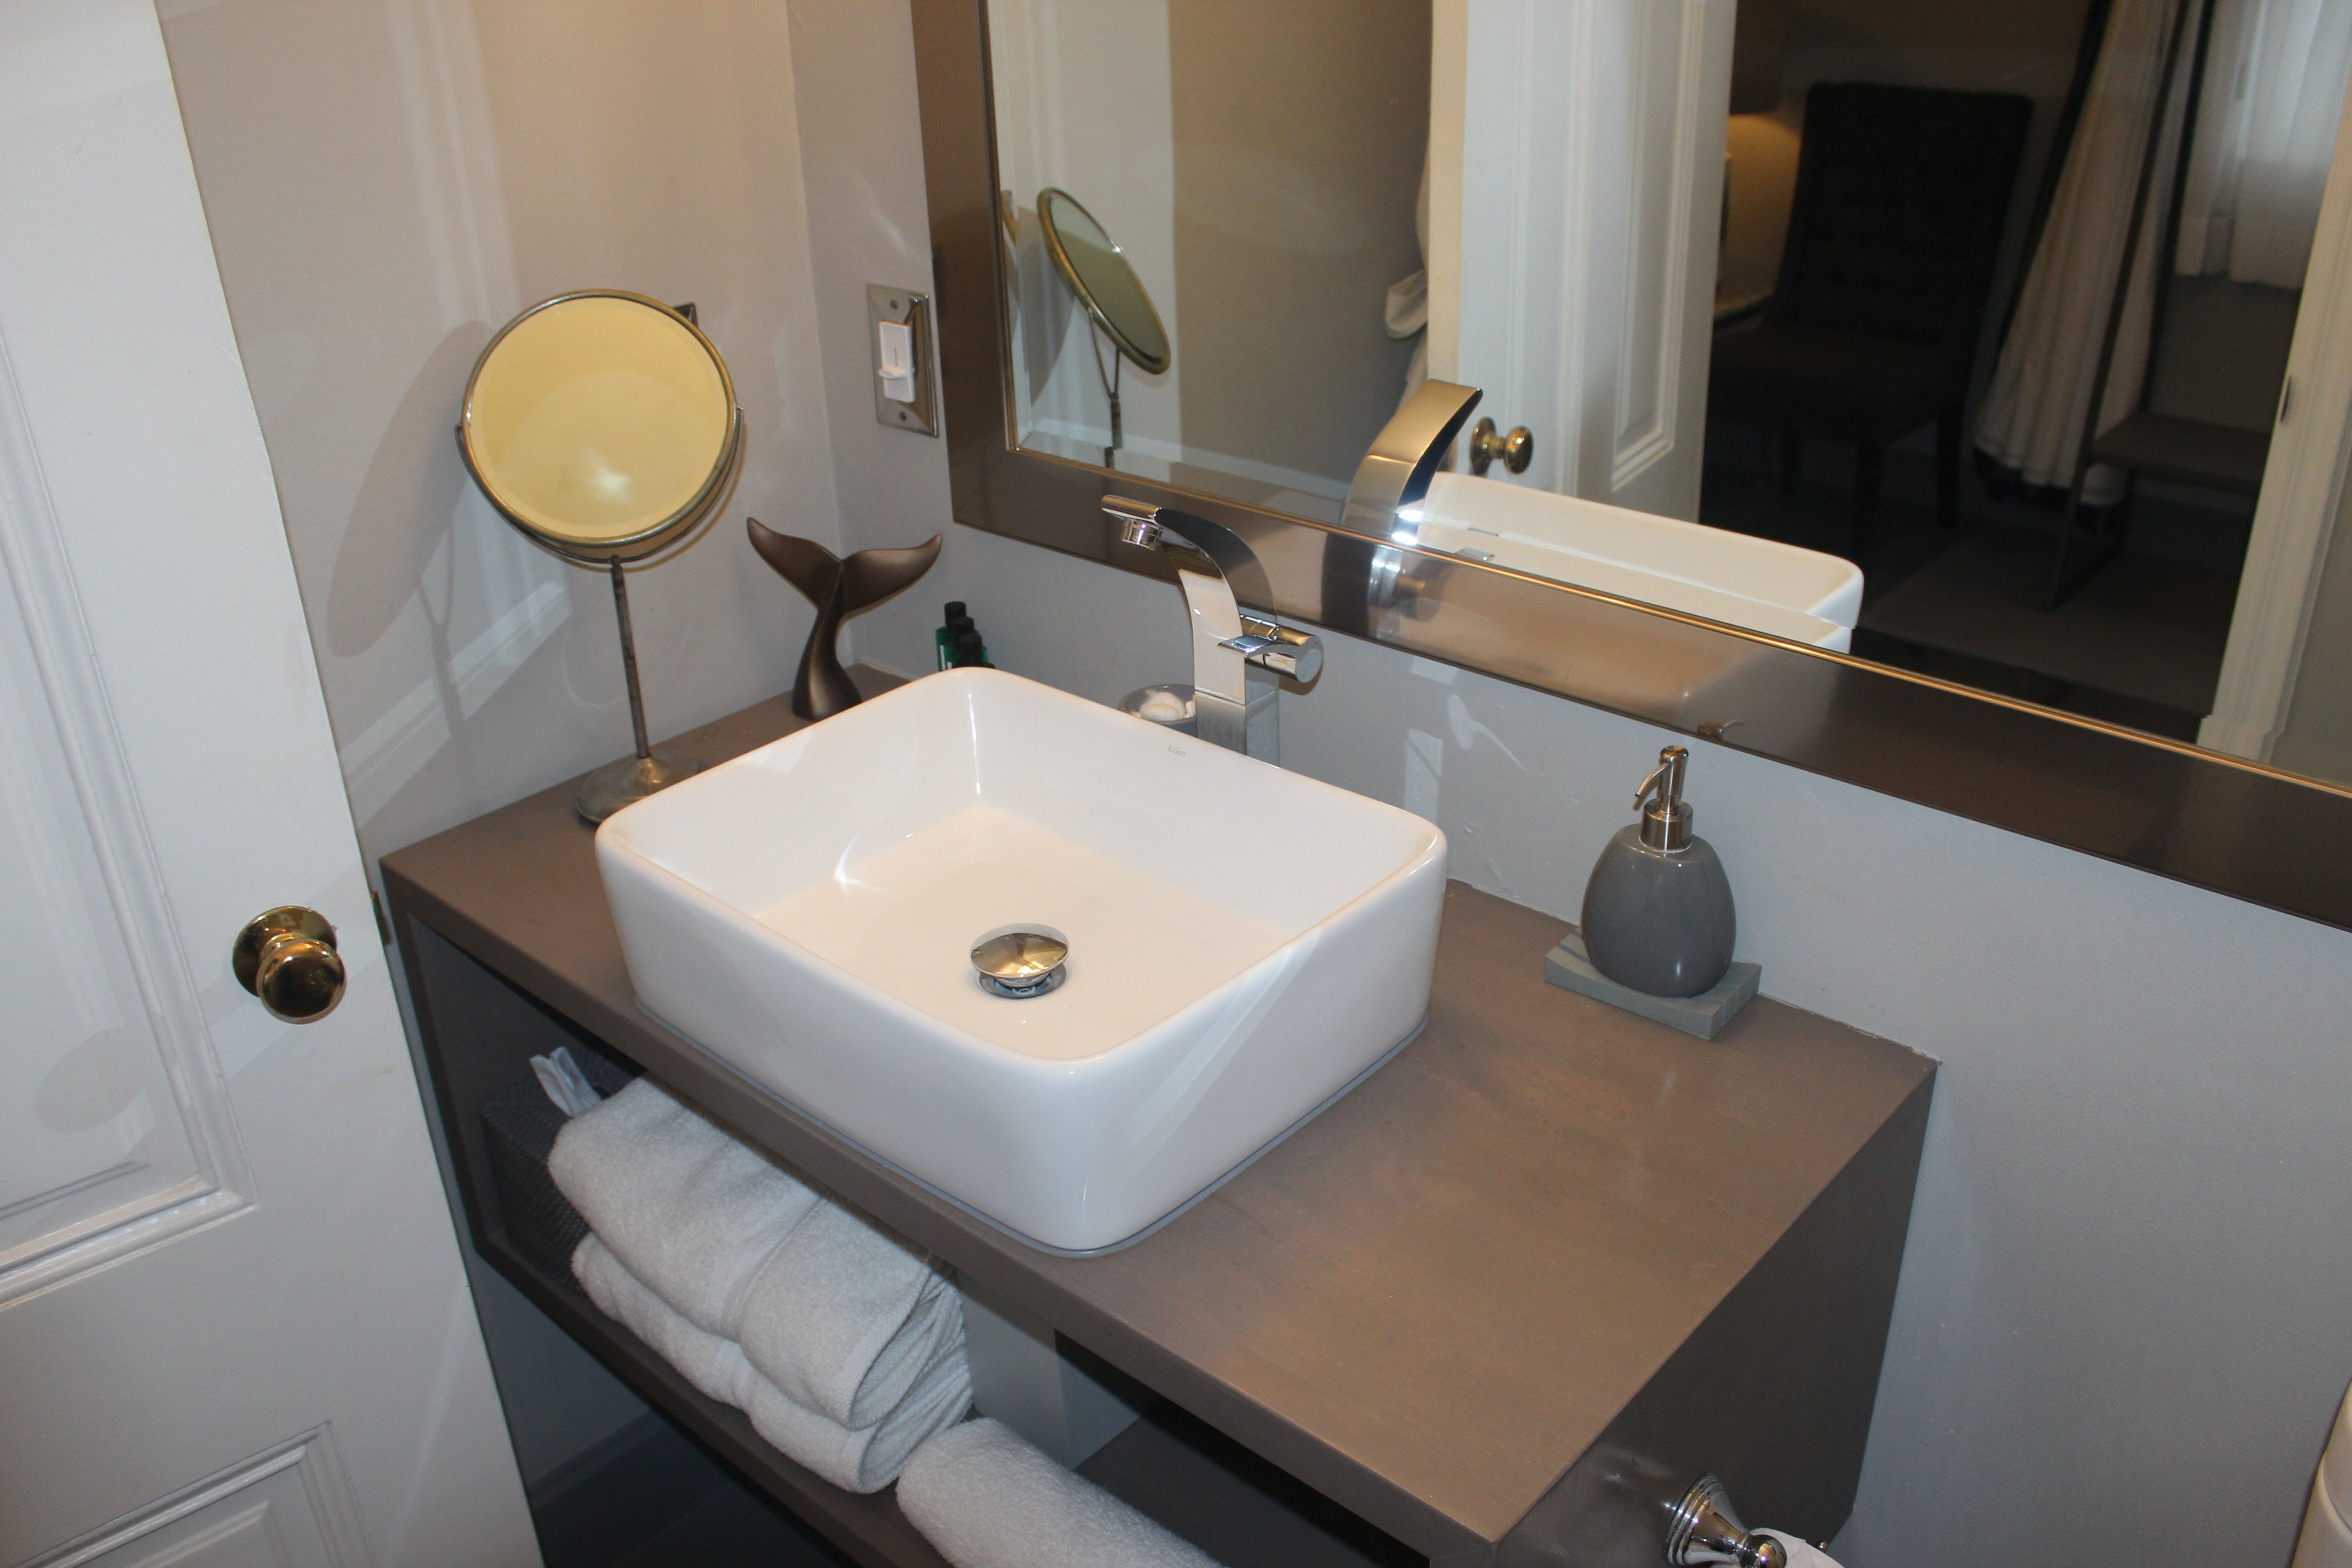 Siasconset BathRoom SInk